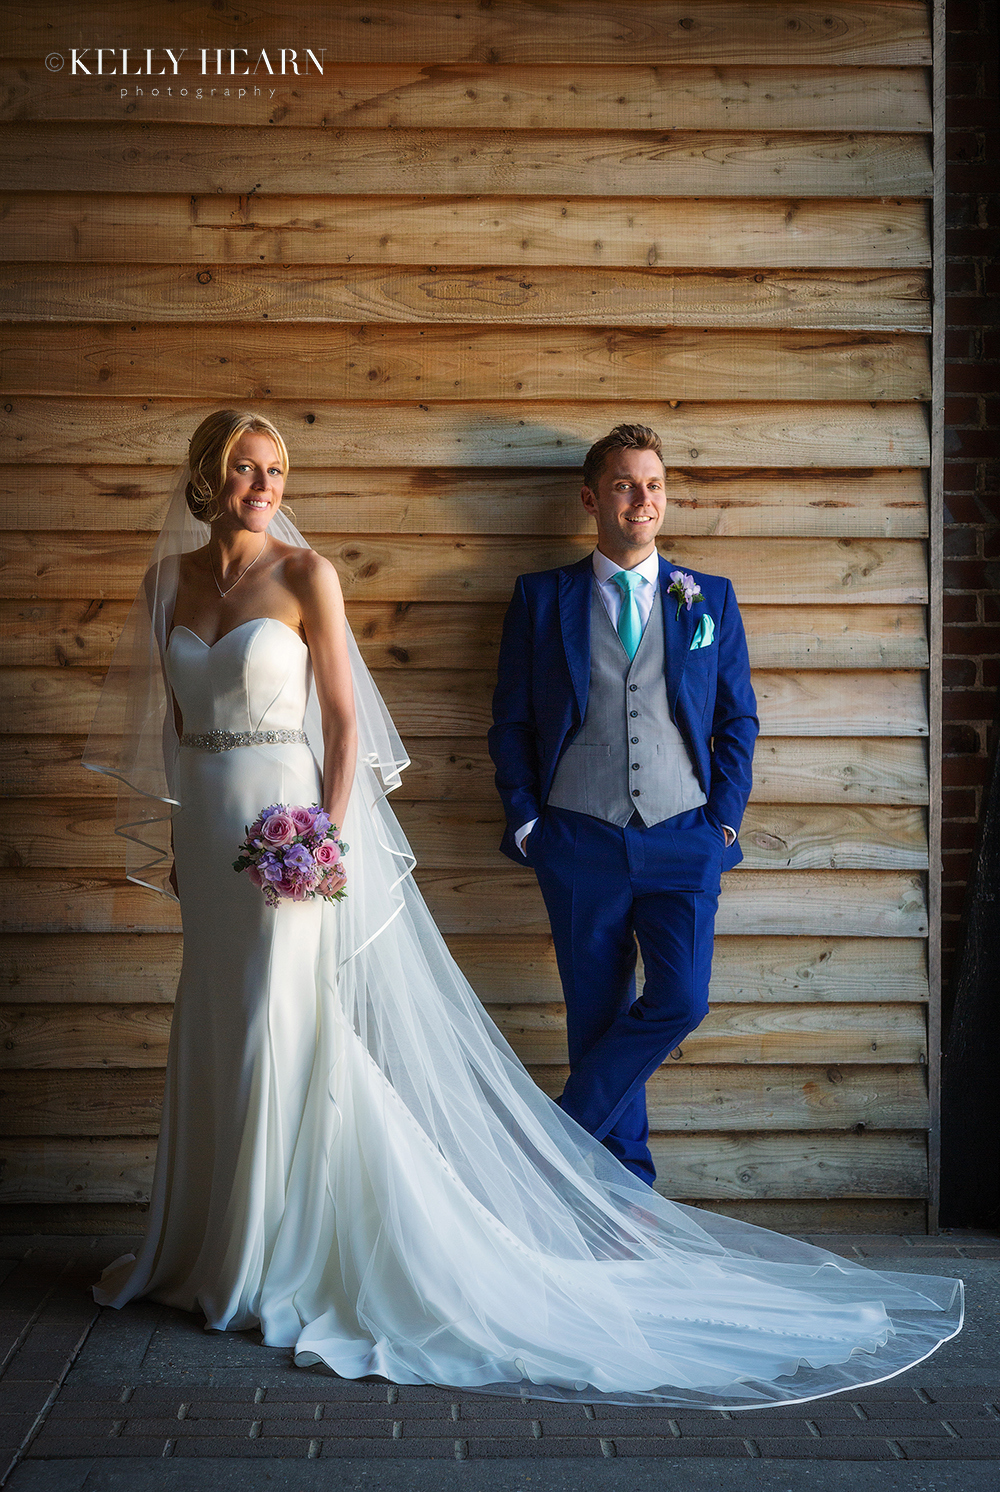 GRE_bride-and-groom-against-wooden-barn.jpg#asset:2696